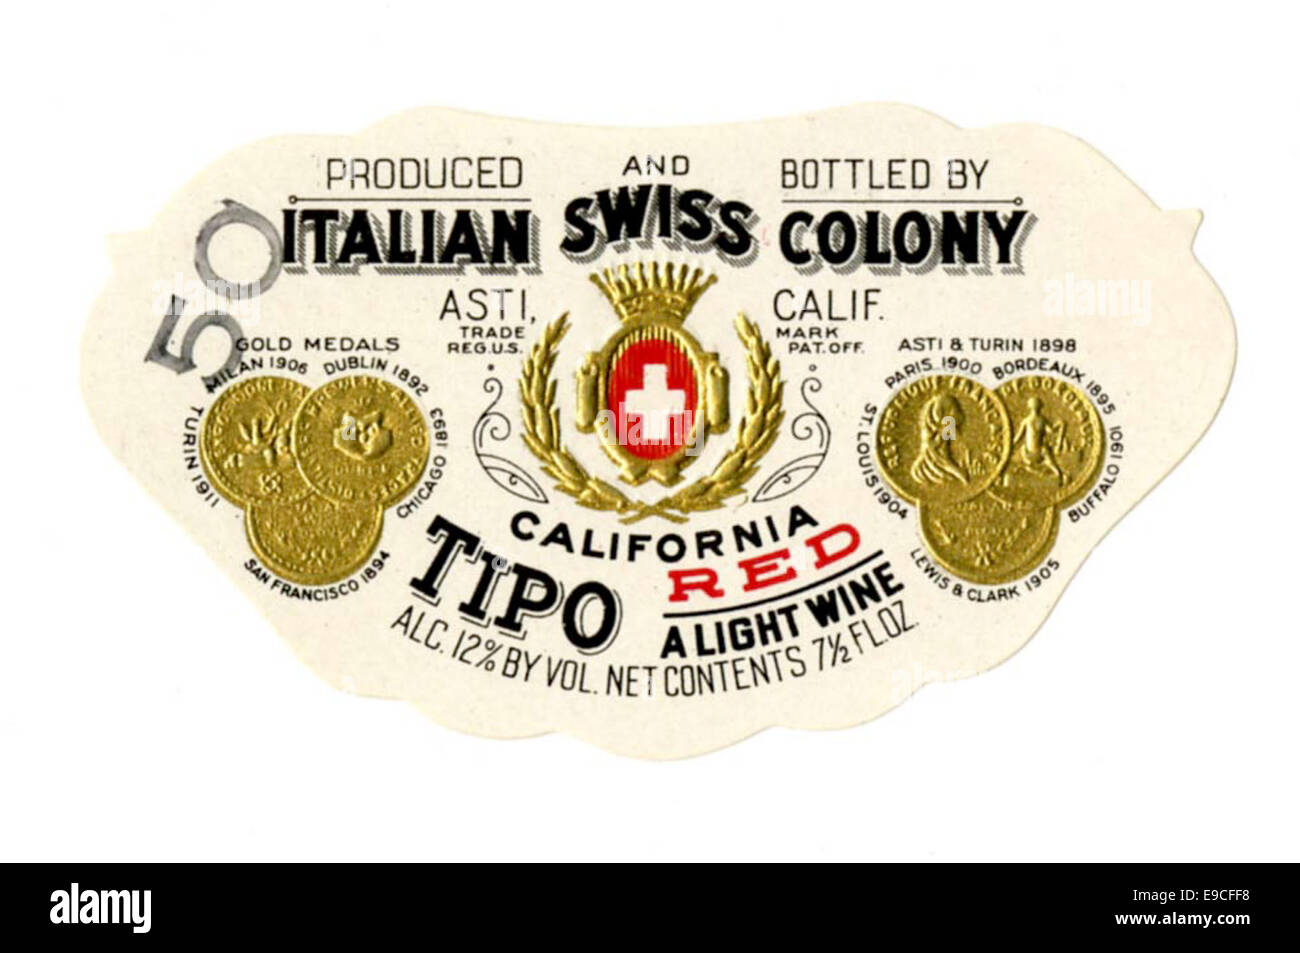 Wine label, Italian Swiss Colony, Tipo California Red - Stock Image